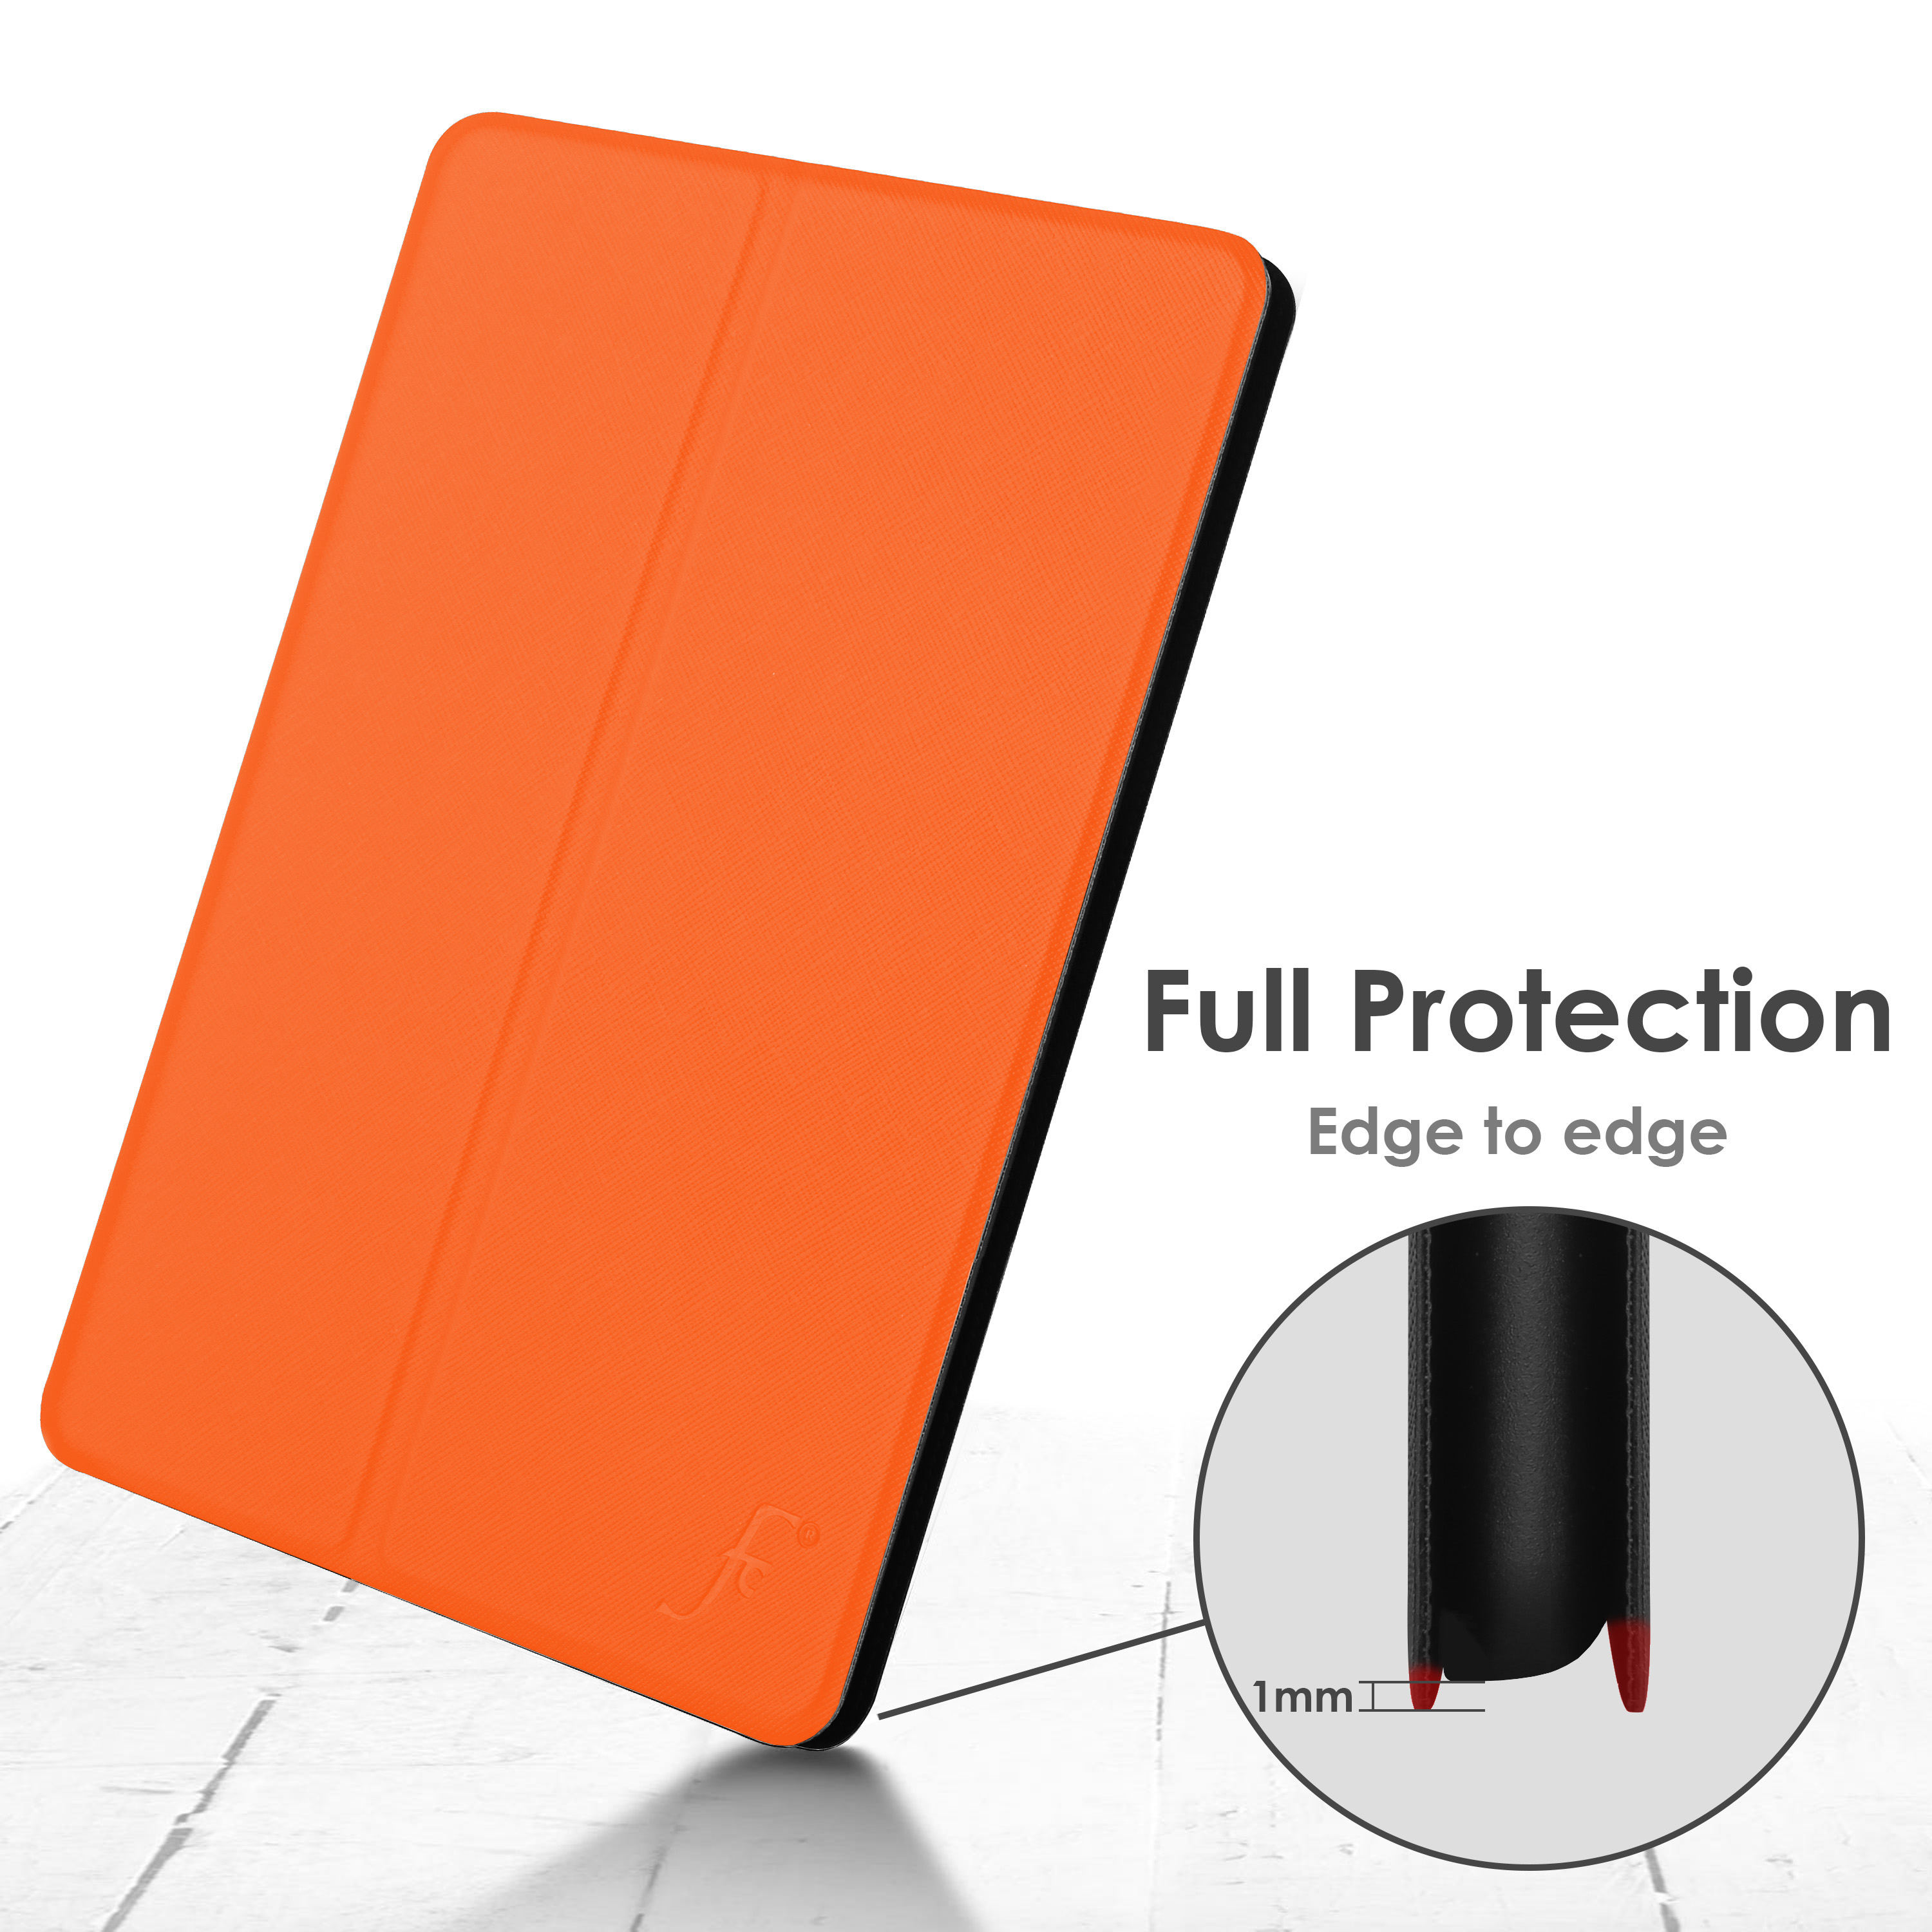 miniature 46 - Samsung Galaxy Tab A 10.1 2019 Étui Magnétique Protection & Support + Stylet